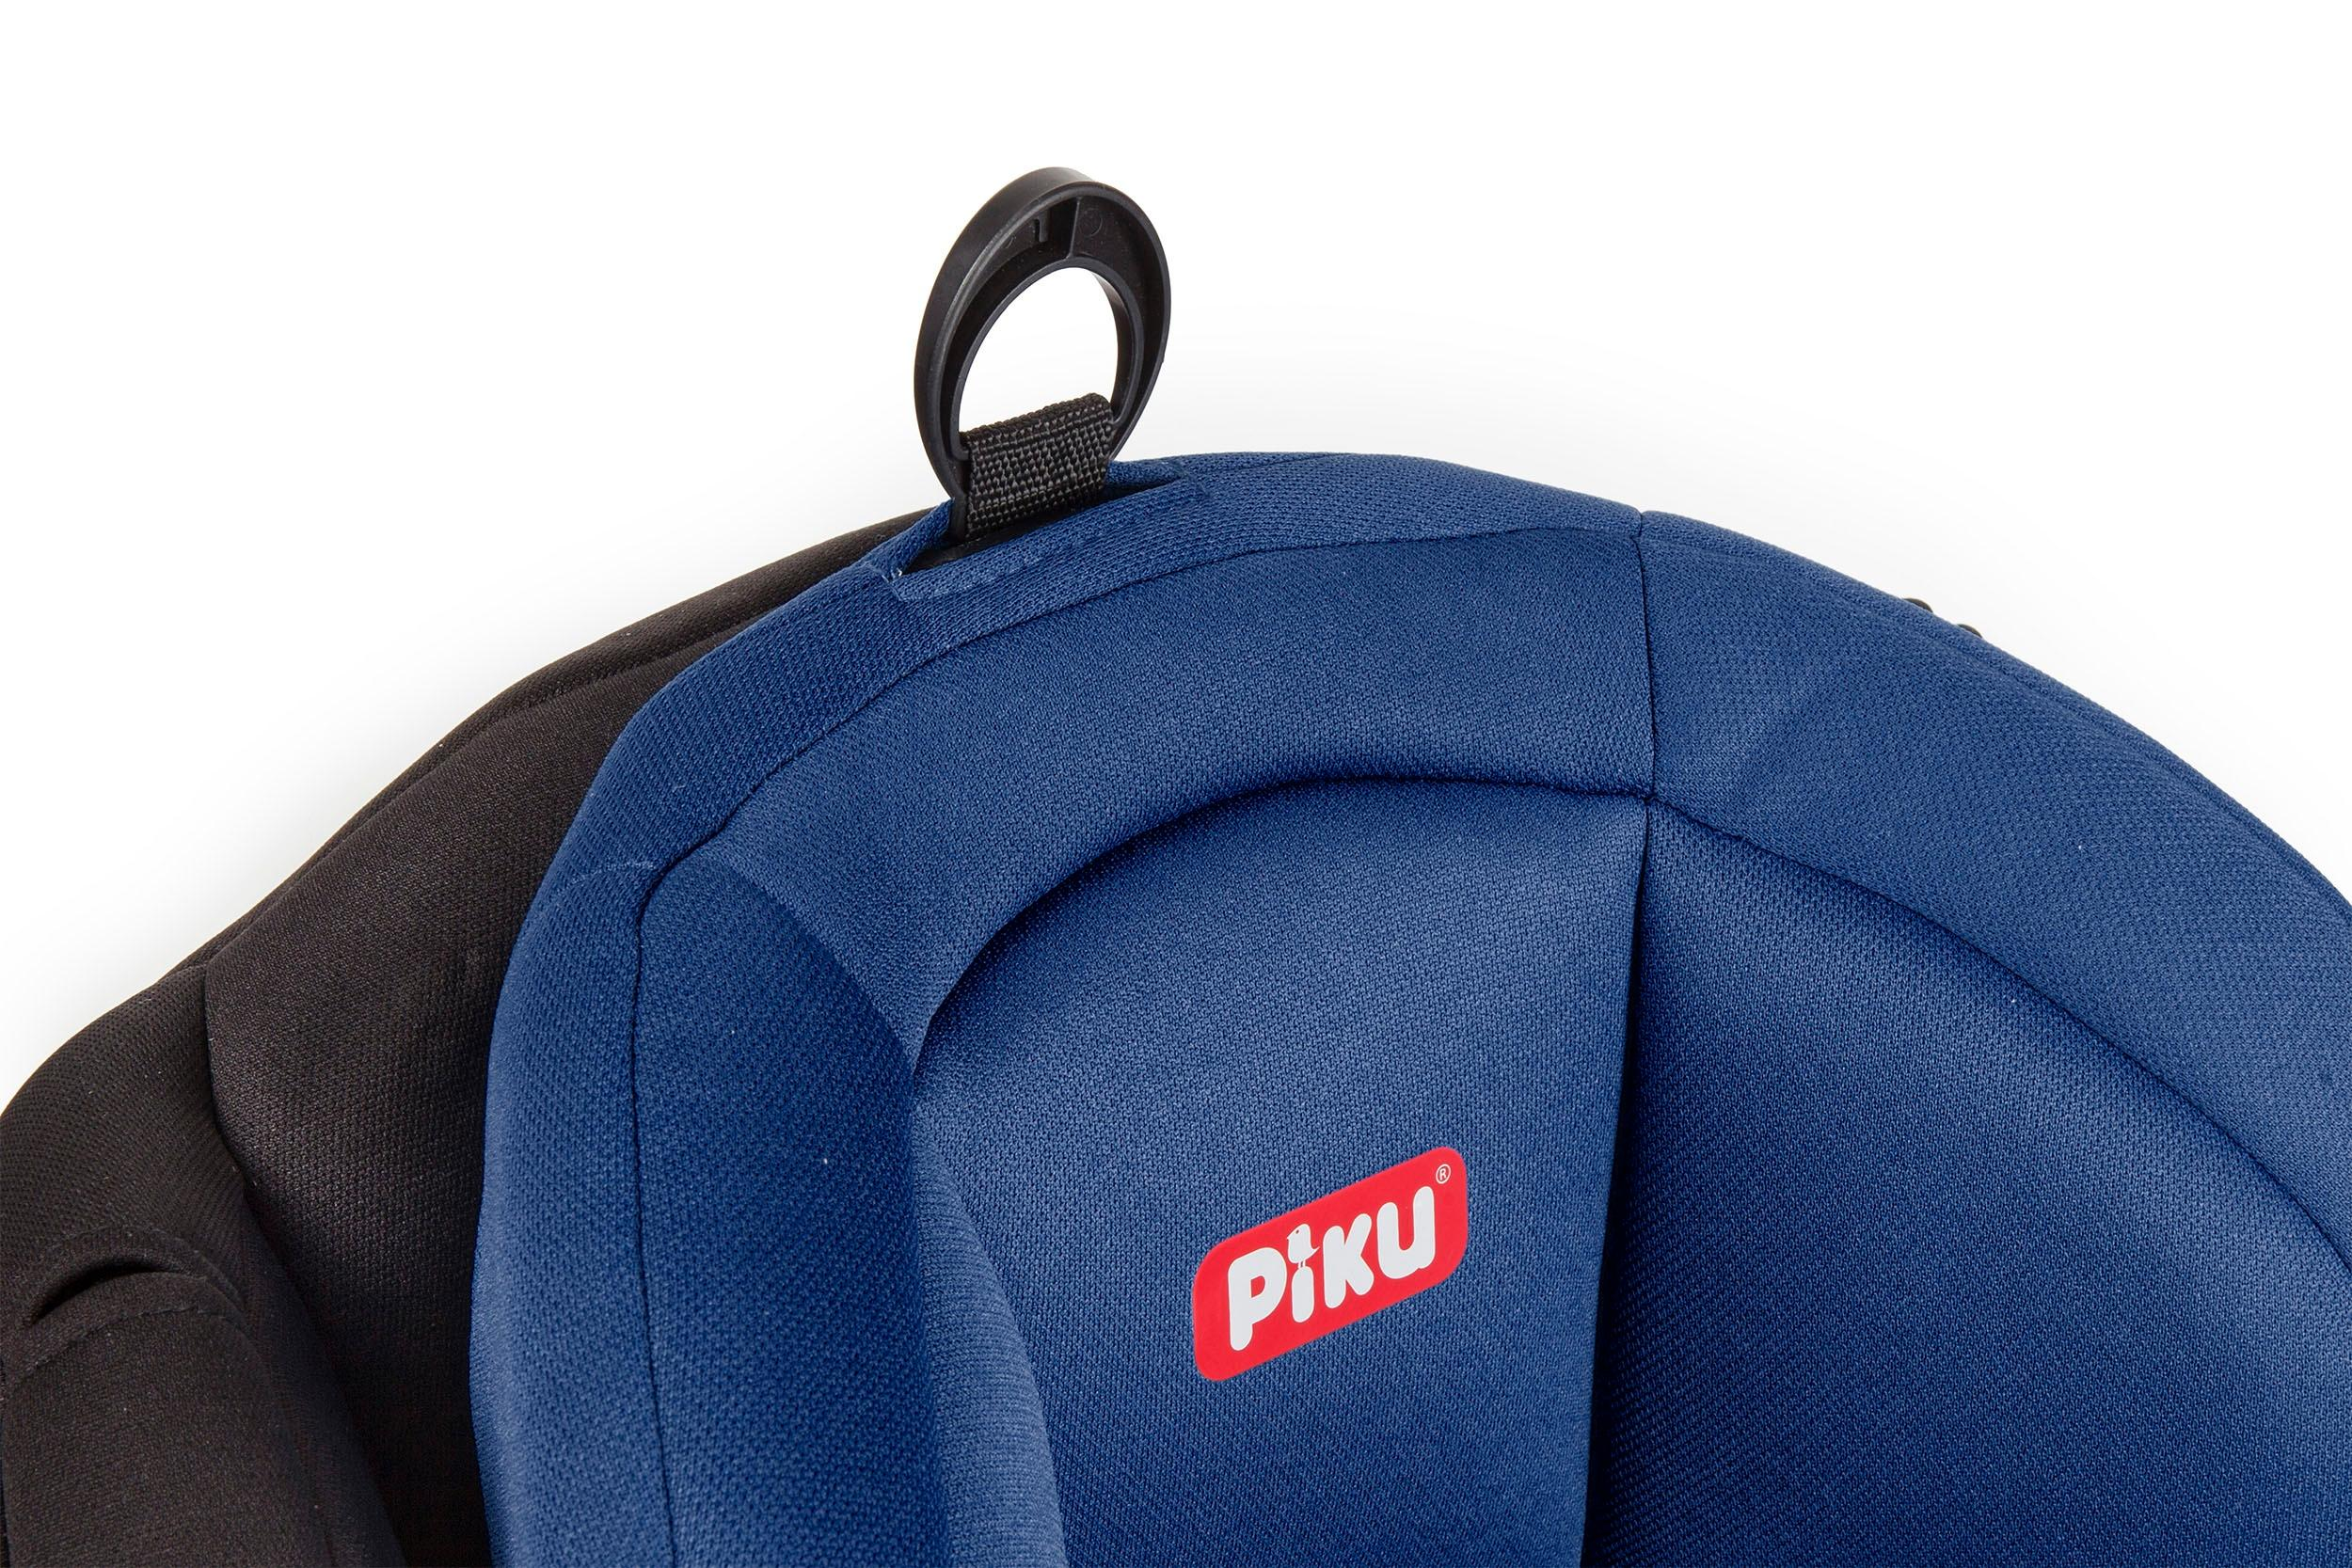 Piku moon silla de coche reclinable grupos 1 2 3 9 36 kg 1 12 a os color azul - Silla 1 2 3 reclinable ...